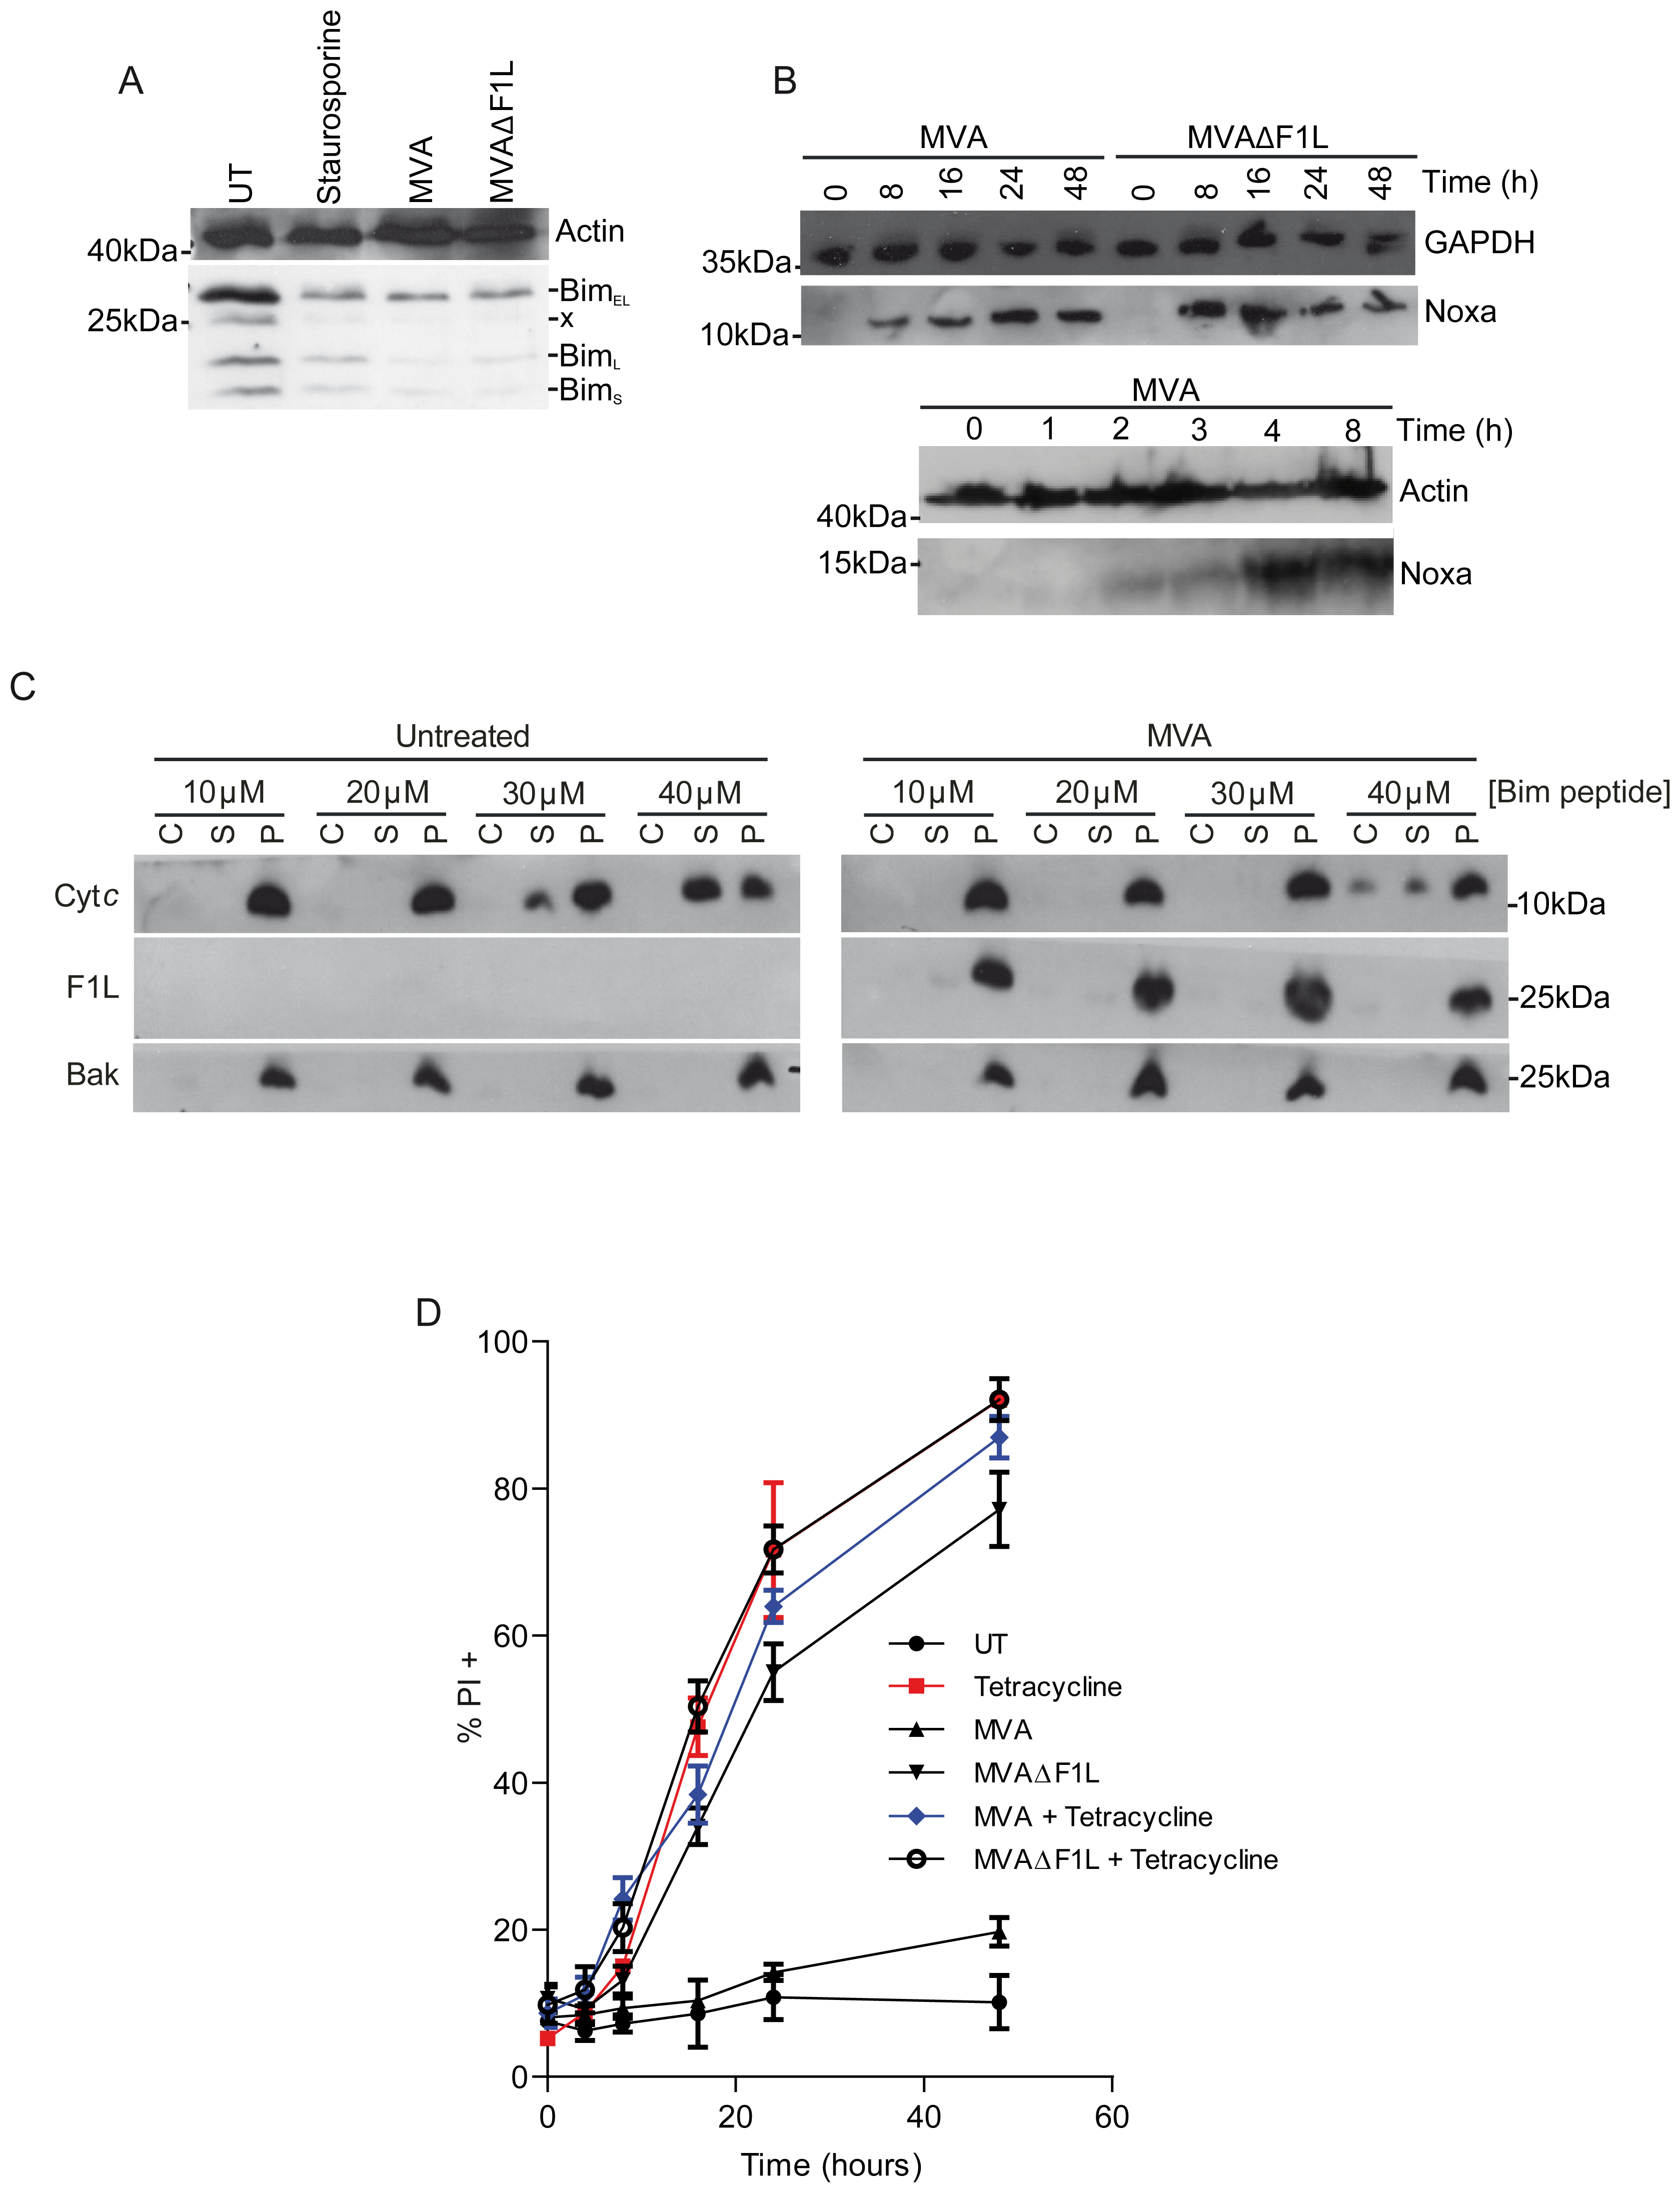 MVA infection causes a reduction in Bim levels and induction of Noxa expression while F1L weakly inhibits Bim induced apoptosis.